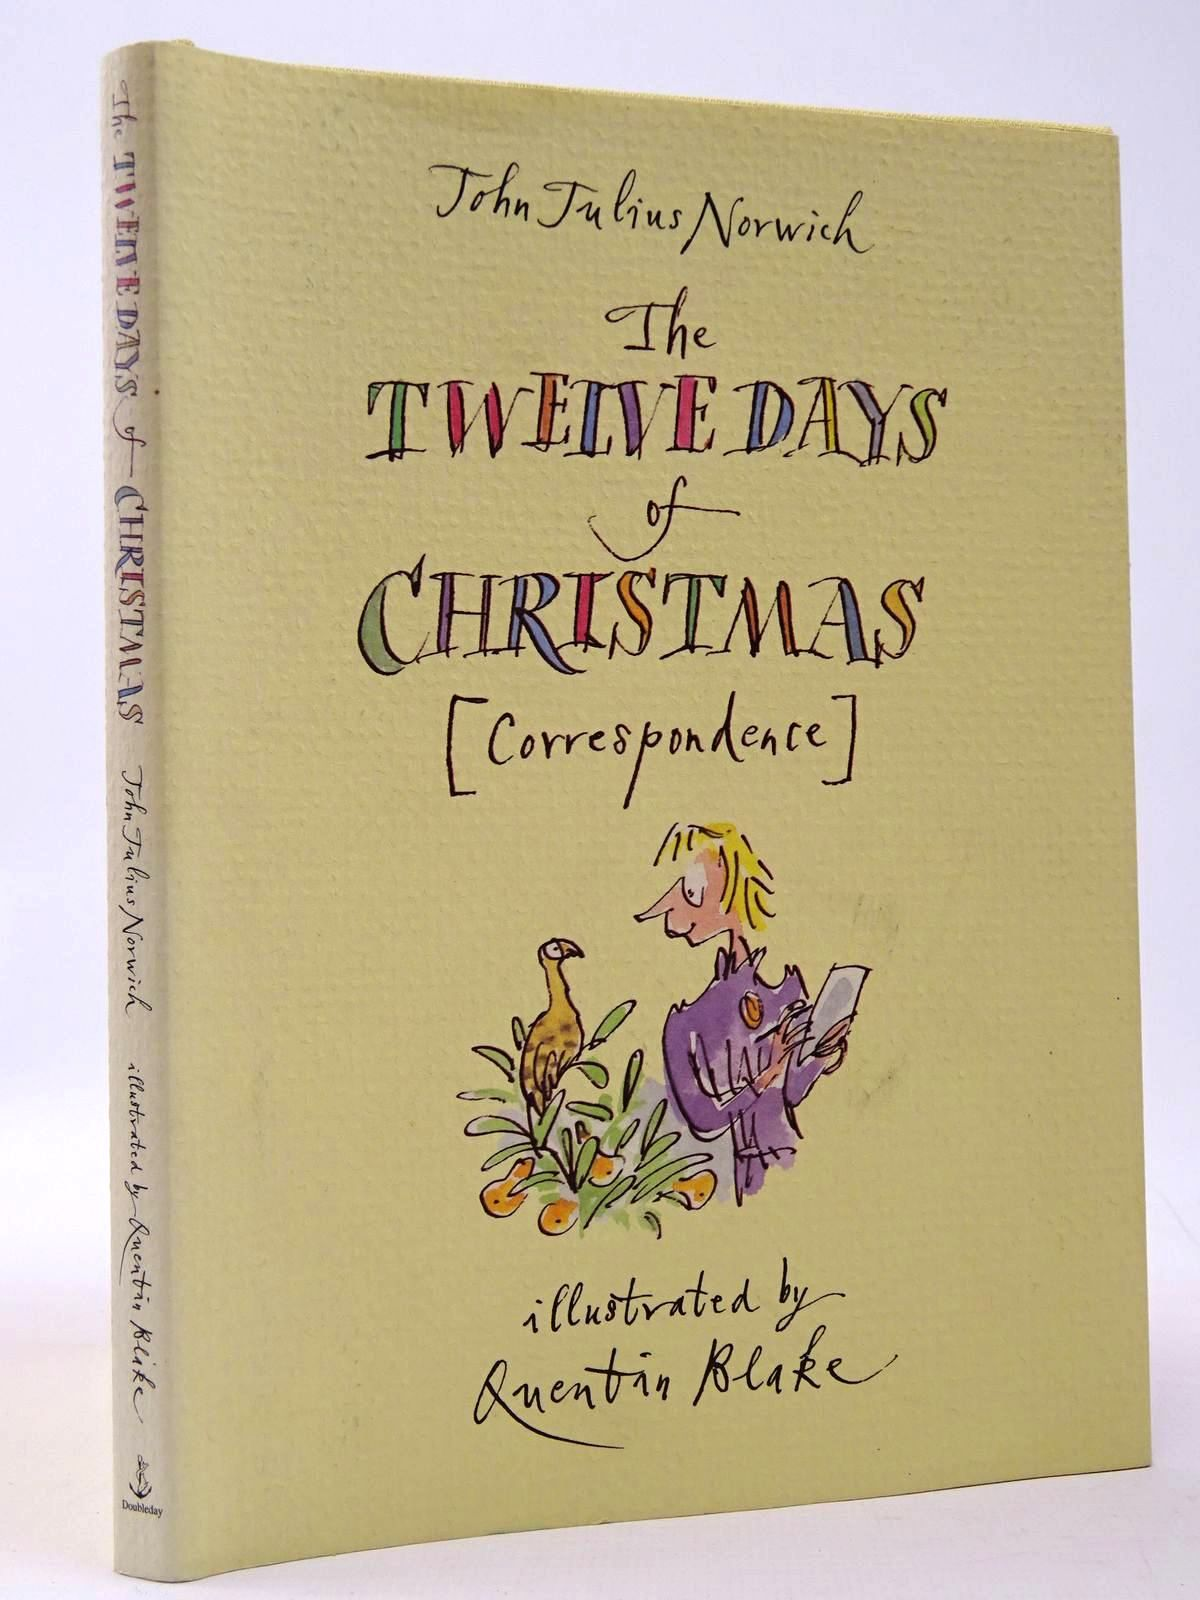 Photo of THE TWELVE DAYS OF CHRISTMAS (CORRESPONDENCE) written by Norwich, John Julius illustrated by Blake, Quentin published by Doubleday (STOCK CODE: 2129834)  for sale by Stella & Rose's Books